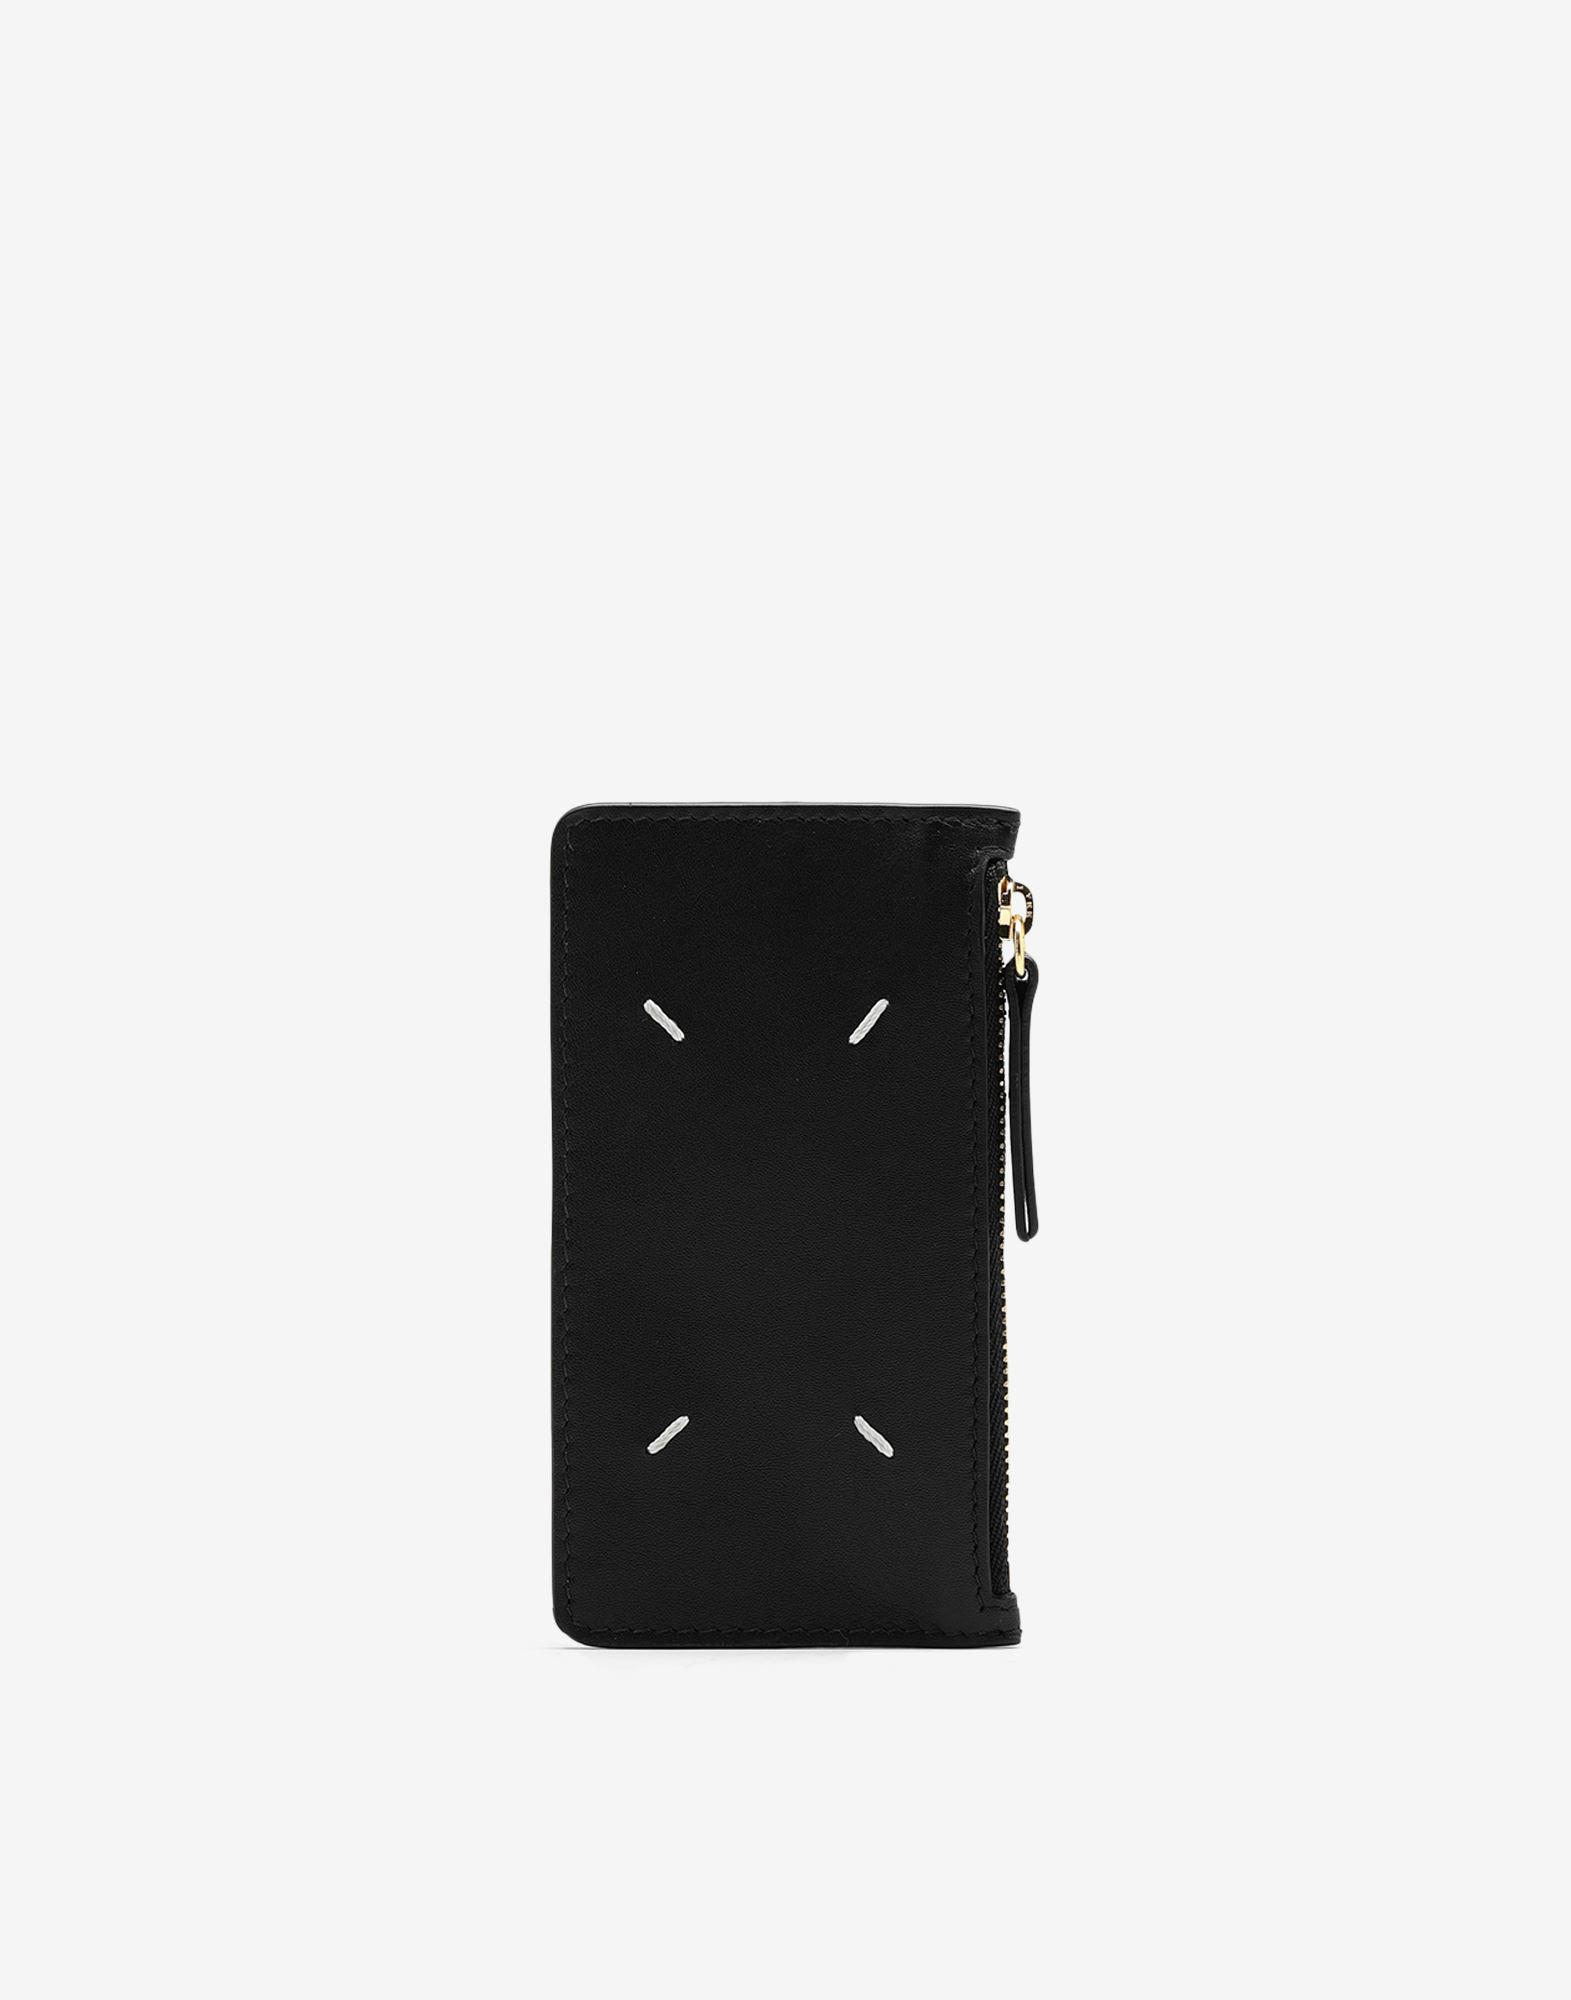 Card-holder calf leather wallet